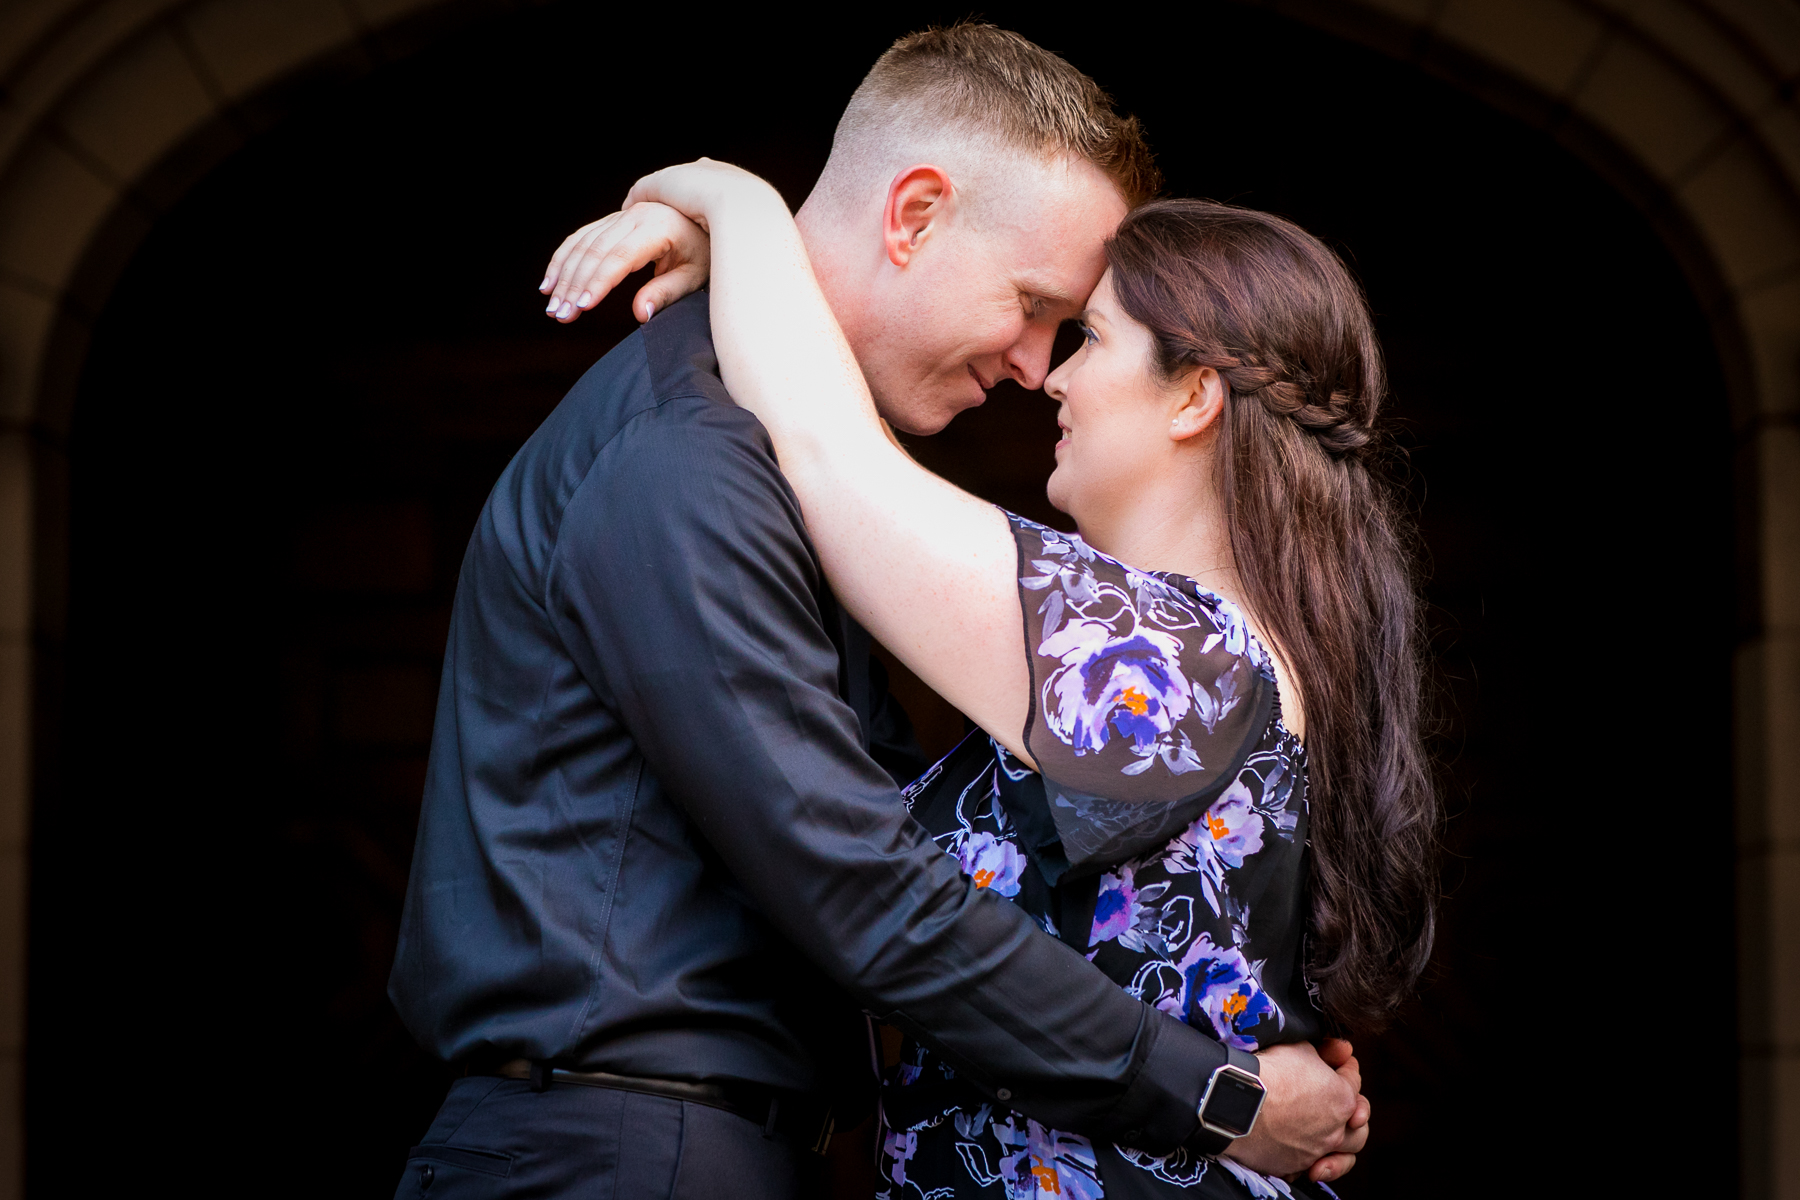 couple gazes into each other's eyes during balboa park engagement session photos